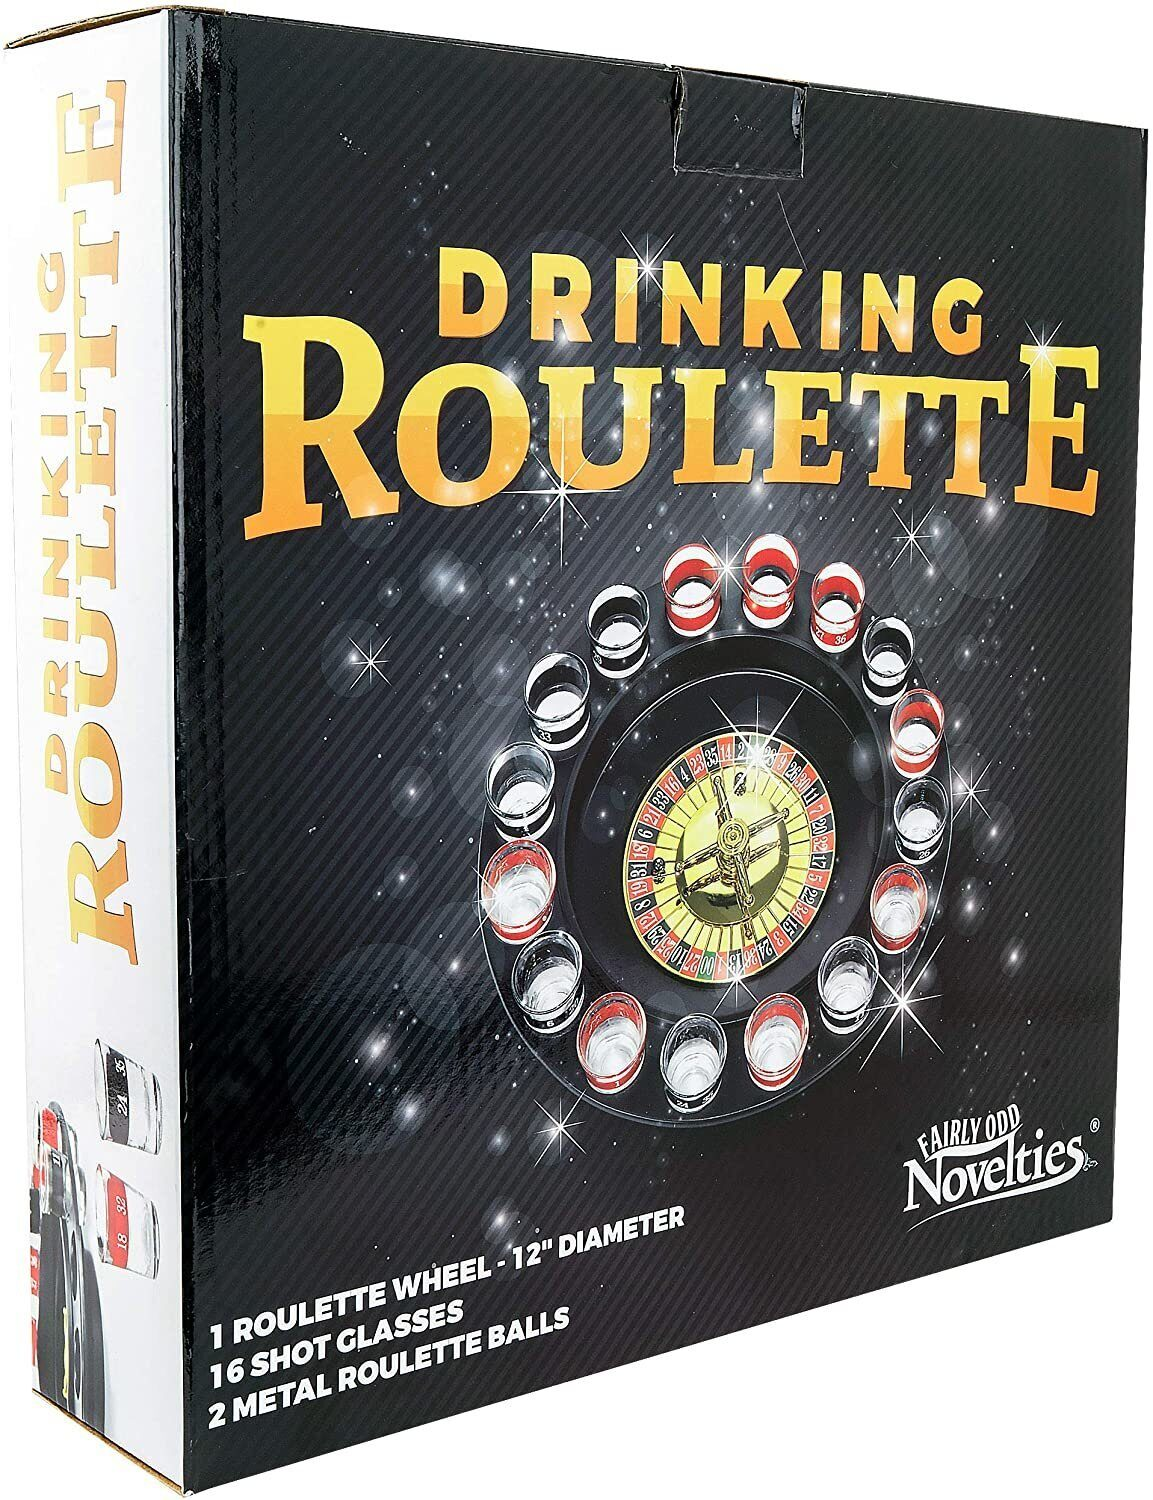 Drinking Roulette incl. 16 shot glasses 3);